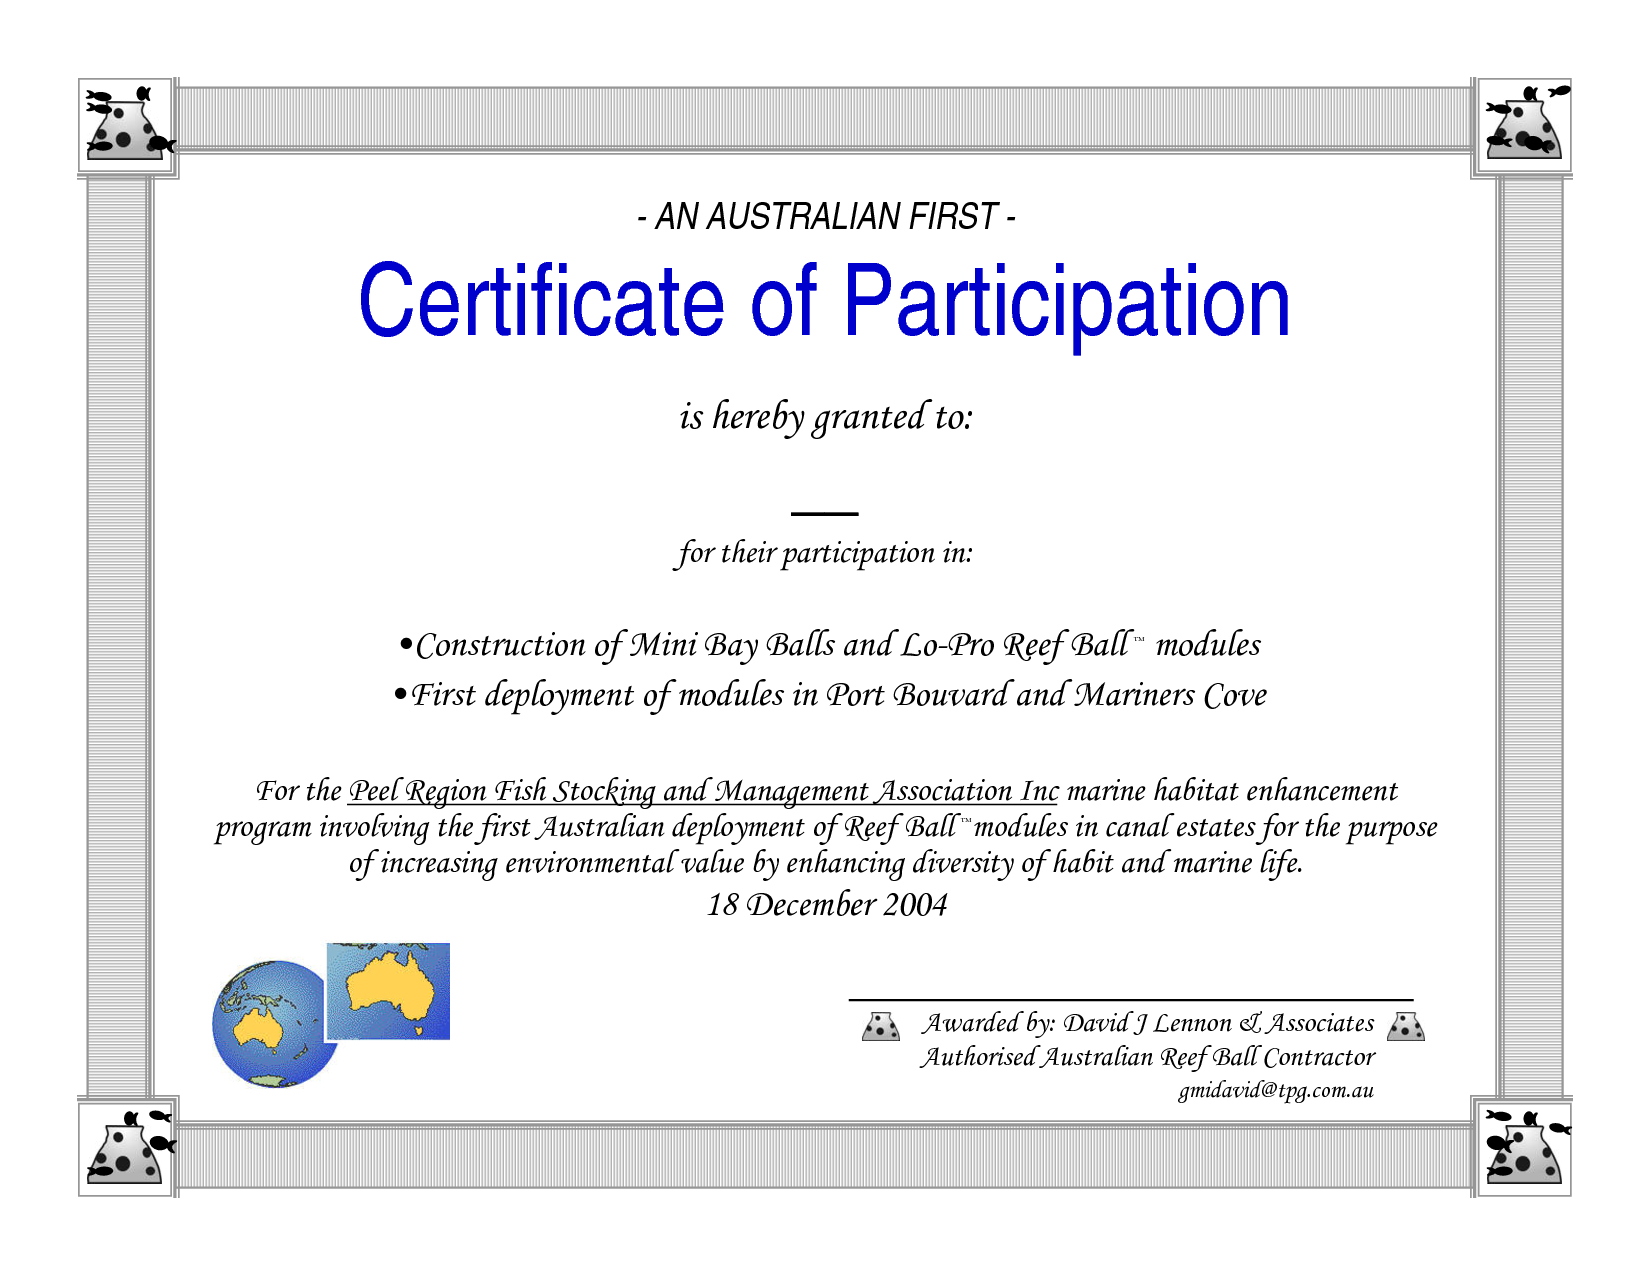 Template For Certificate Of Participation  Sansurabionetassociats Inside Free Templates For Certificates Of Participation